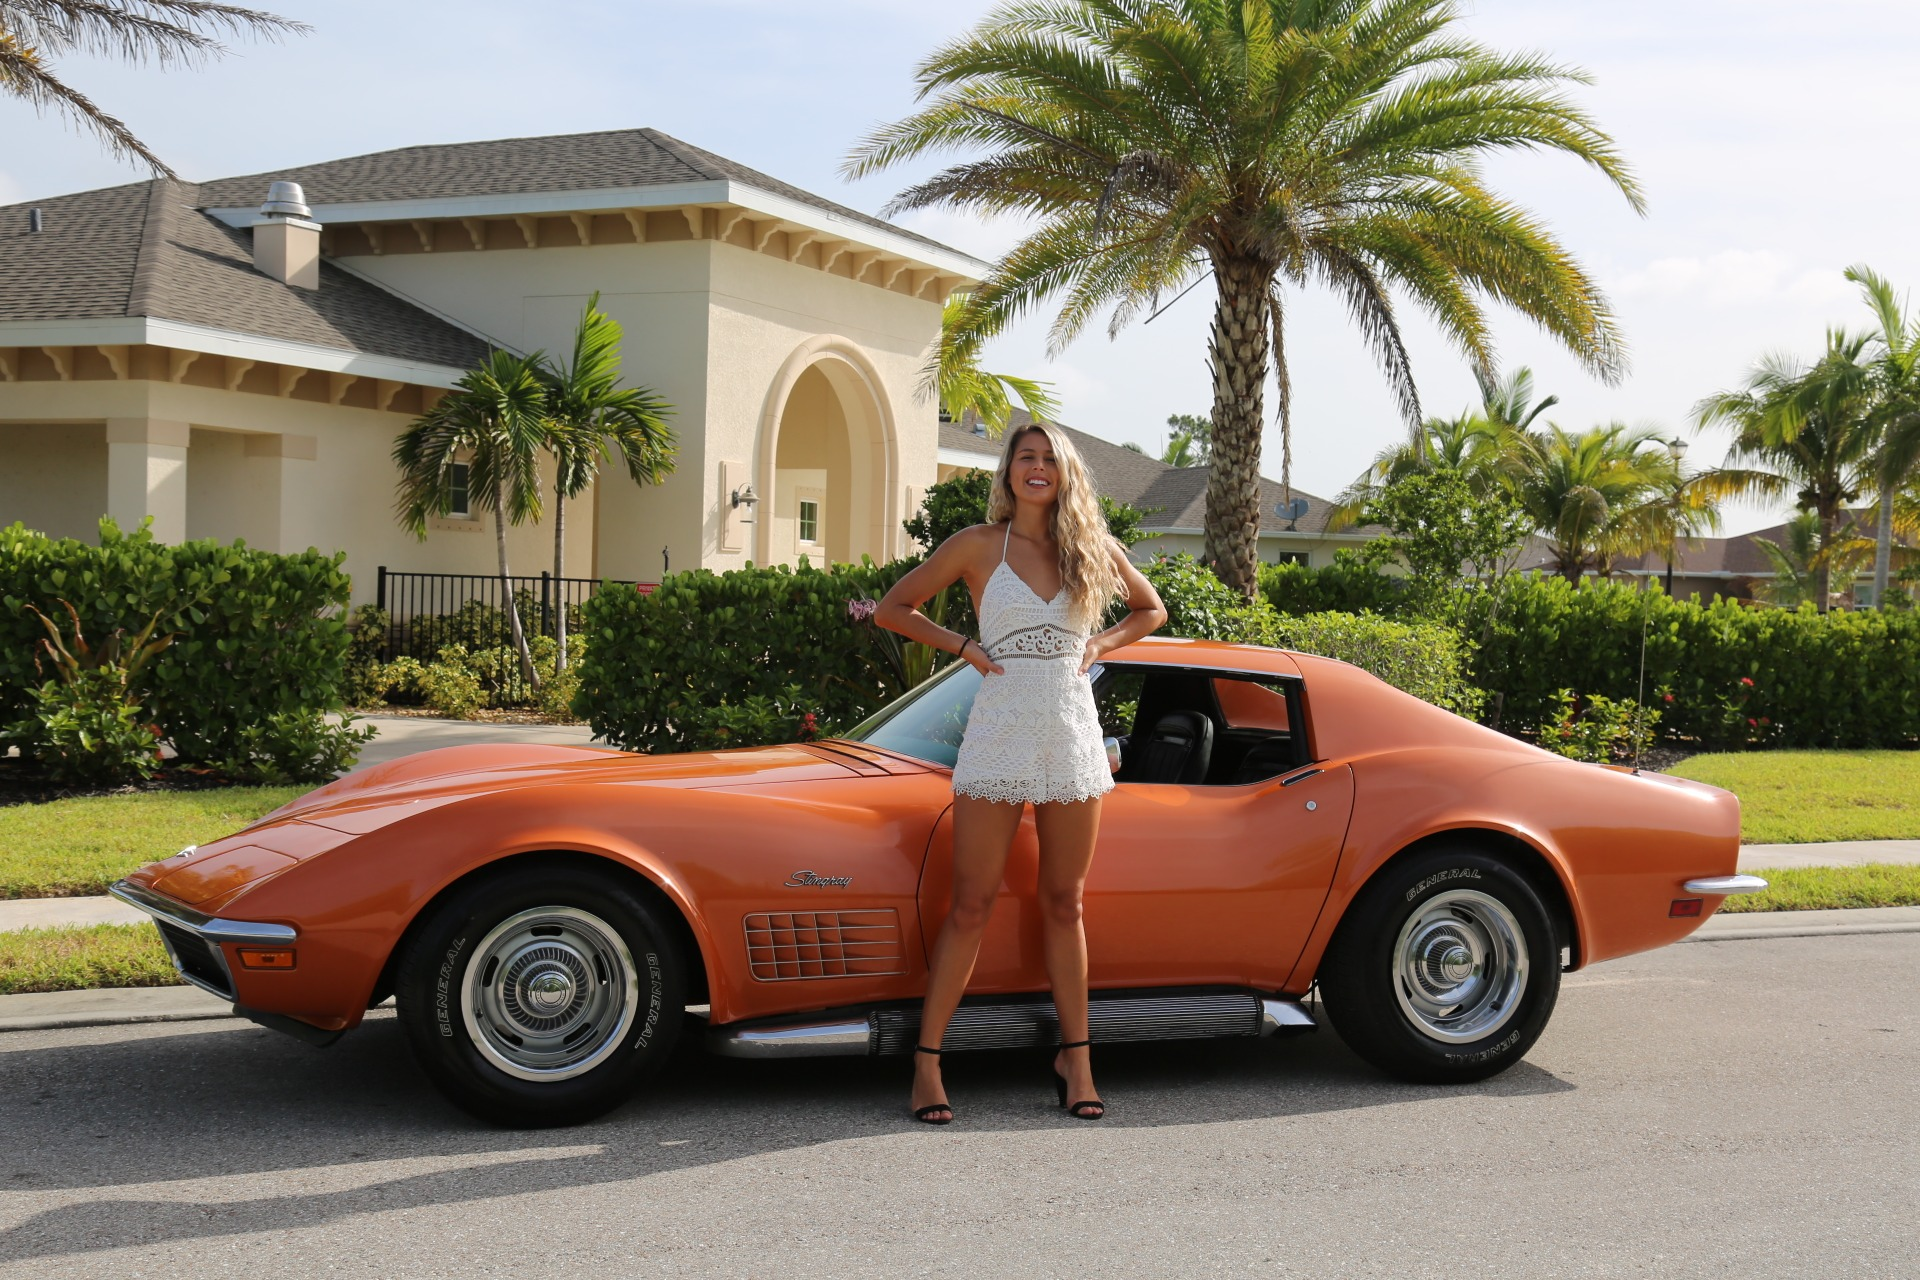 Used 1971 Chevy Corvette Removable rear Glass and T Top 4 speed for sale Sold at Muscle Cars for Sale Inc. in Fort Myers FL 33912 1